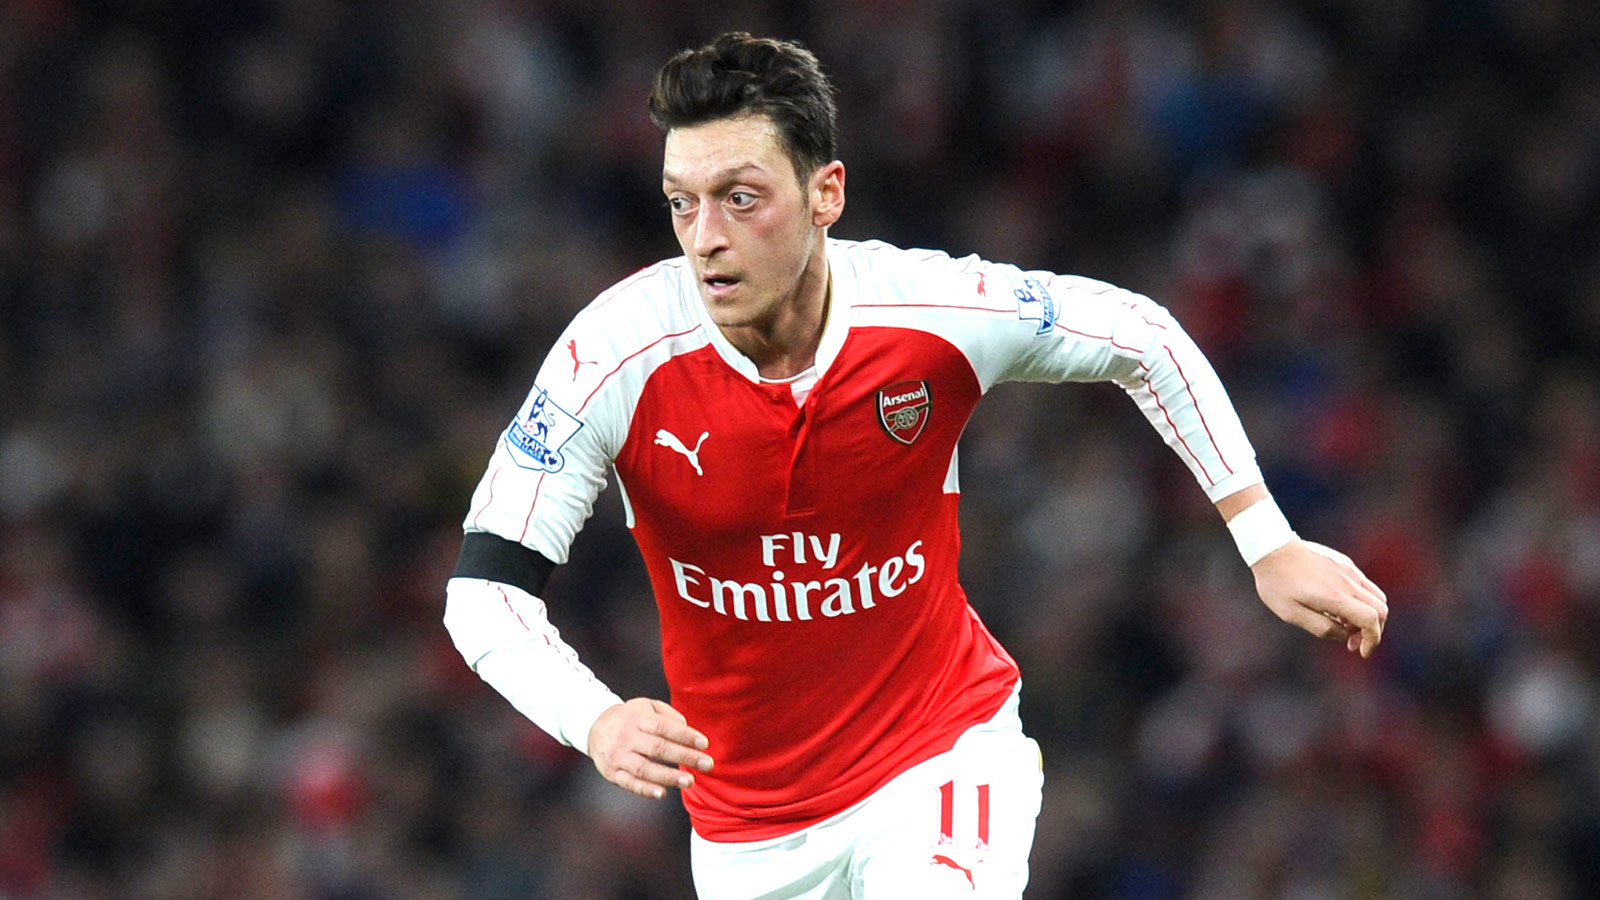 Arsenal chief Arsene Wenger hails 'complete athlete' Mesut Ozil